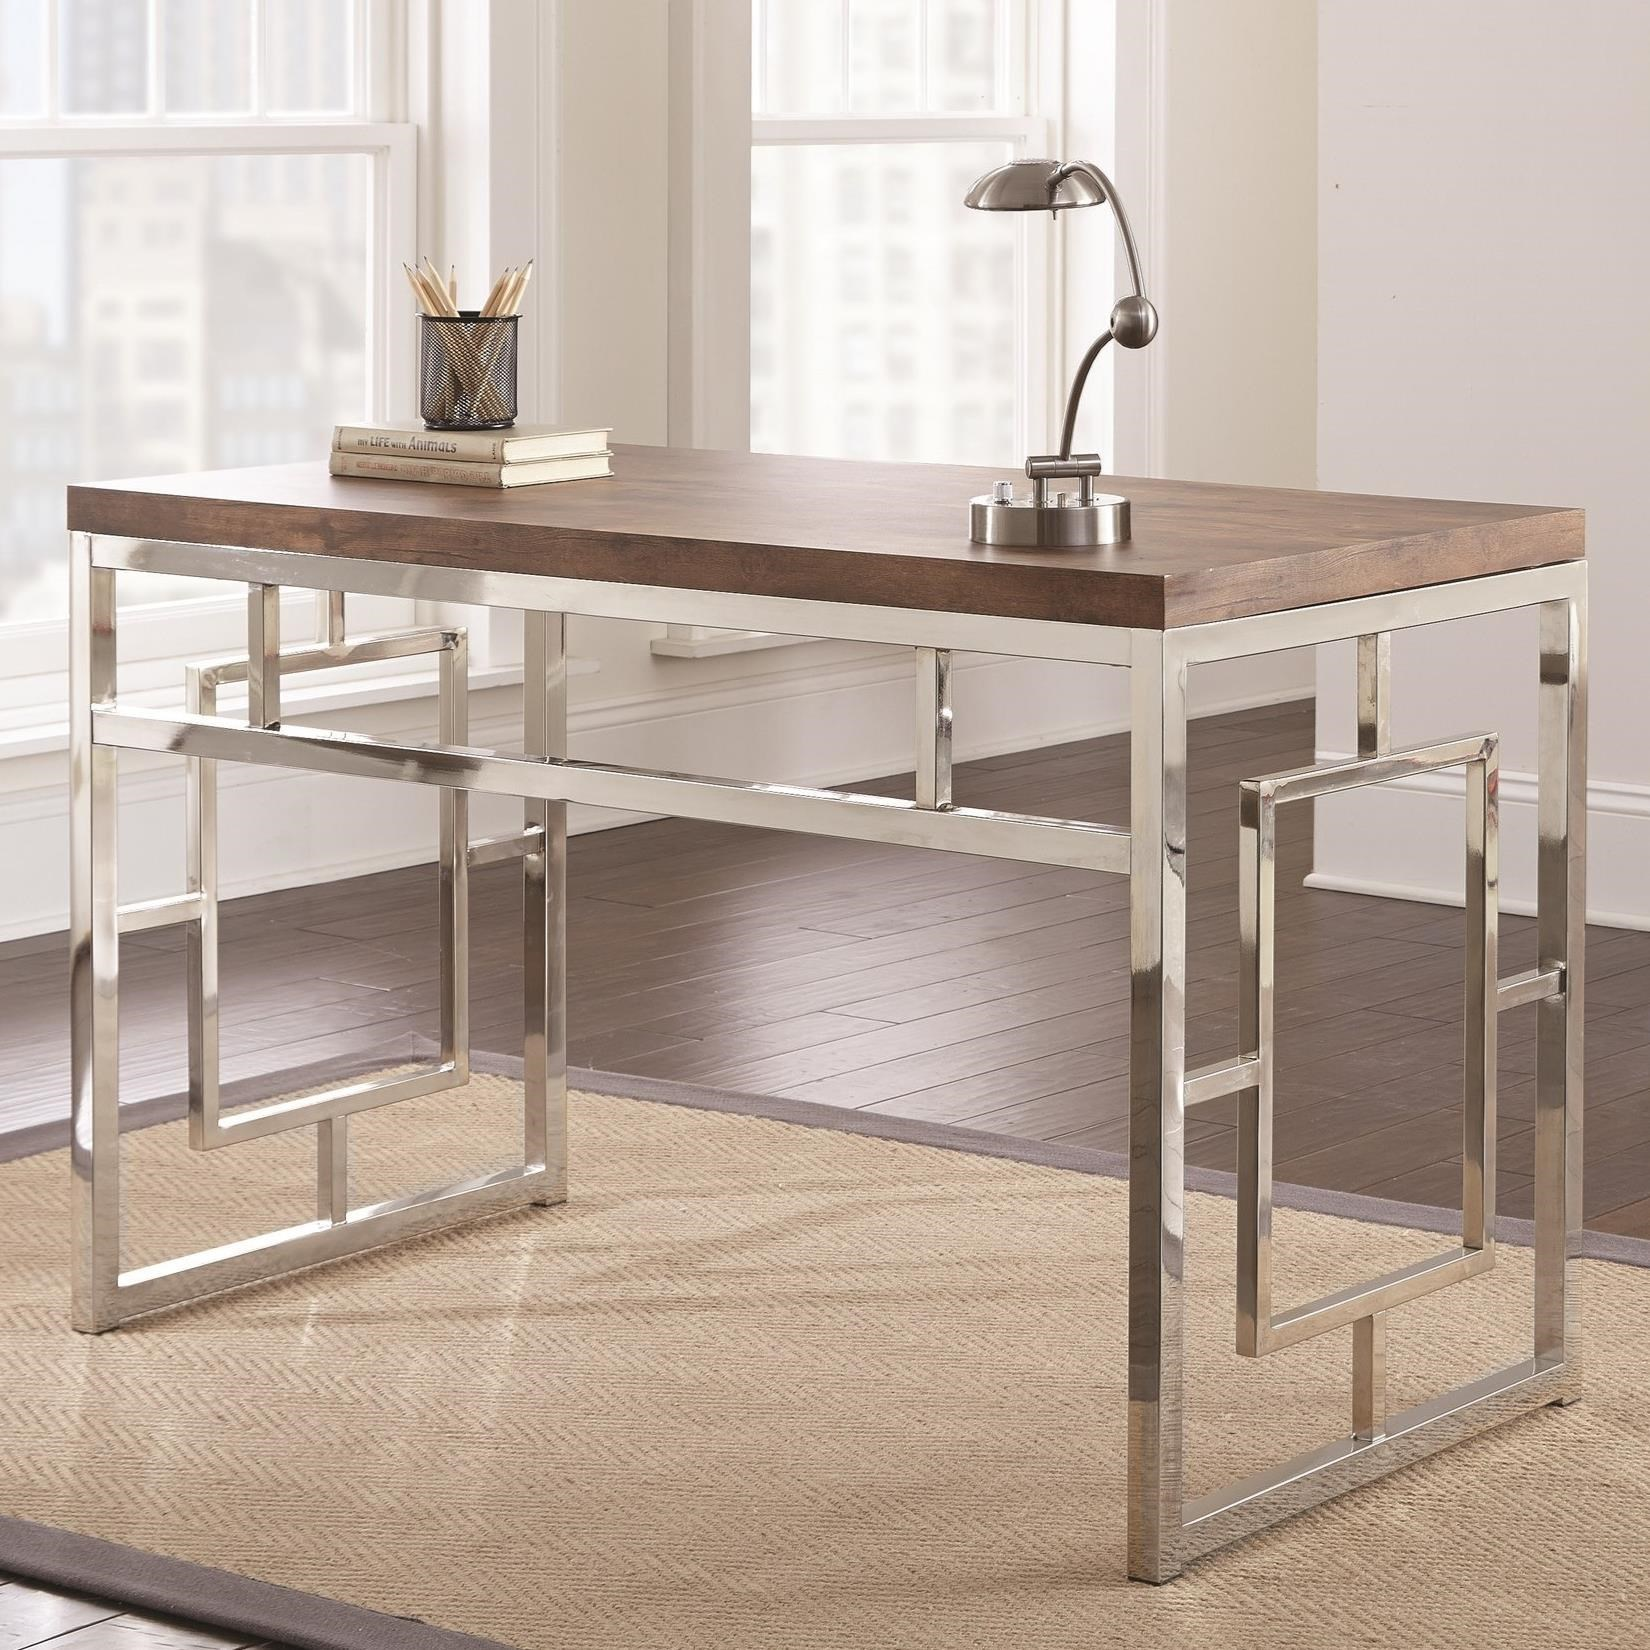 Alize Desk by Steve Silver at Northeast Factory Direct